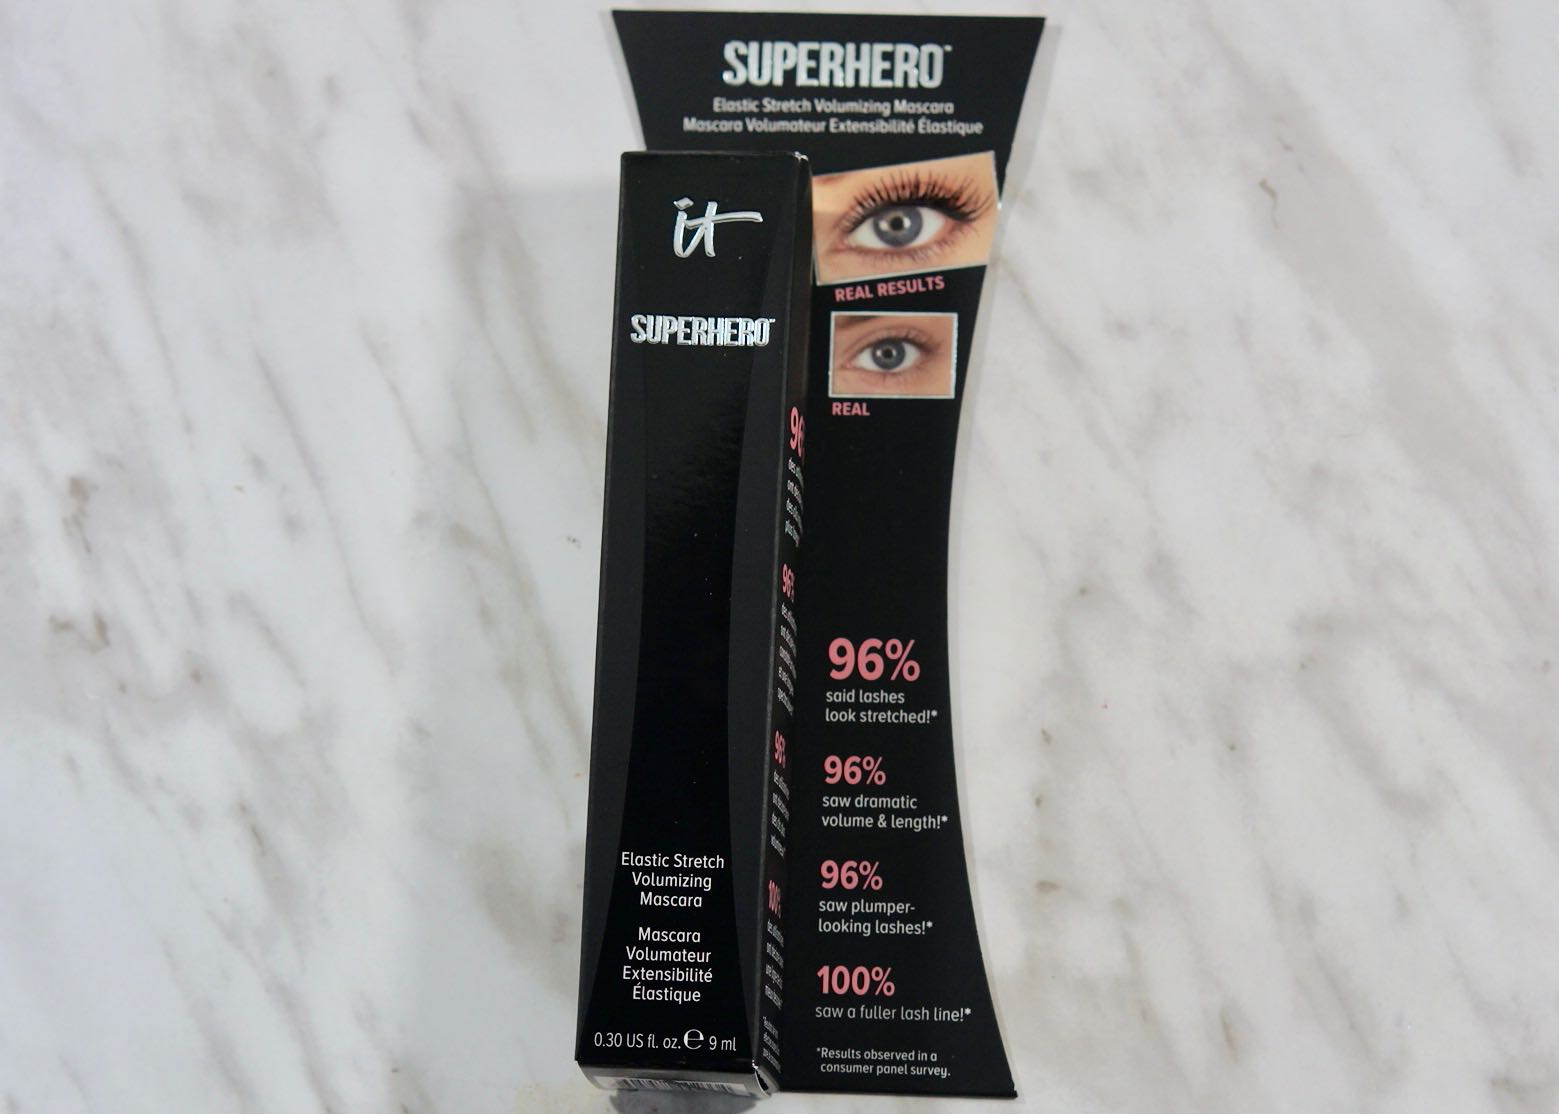 Boxy Charm-October 2018-Alter Ego-It Cosmetics-Superhero MascaraBoxy Charm-October 2018-Alter EgoDSC08835.jpg